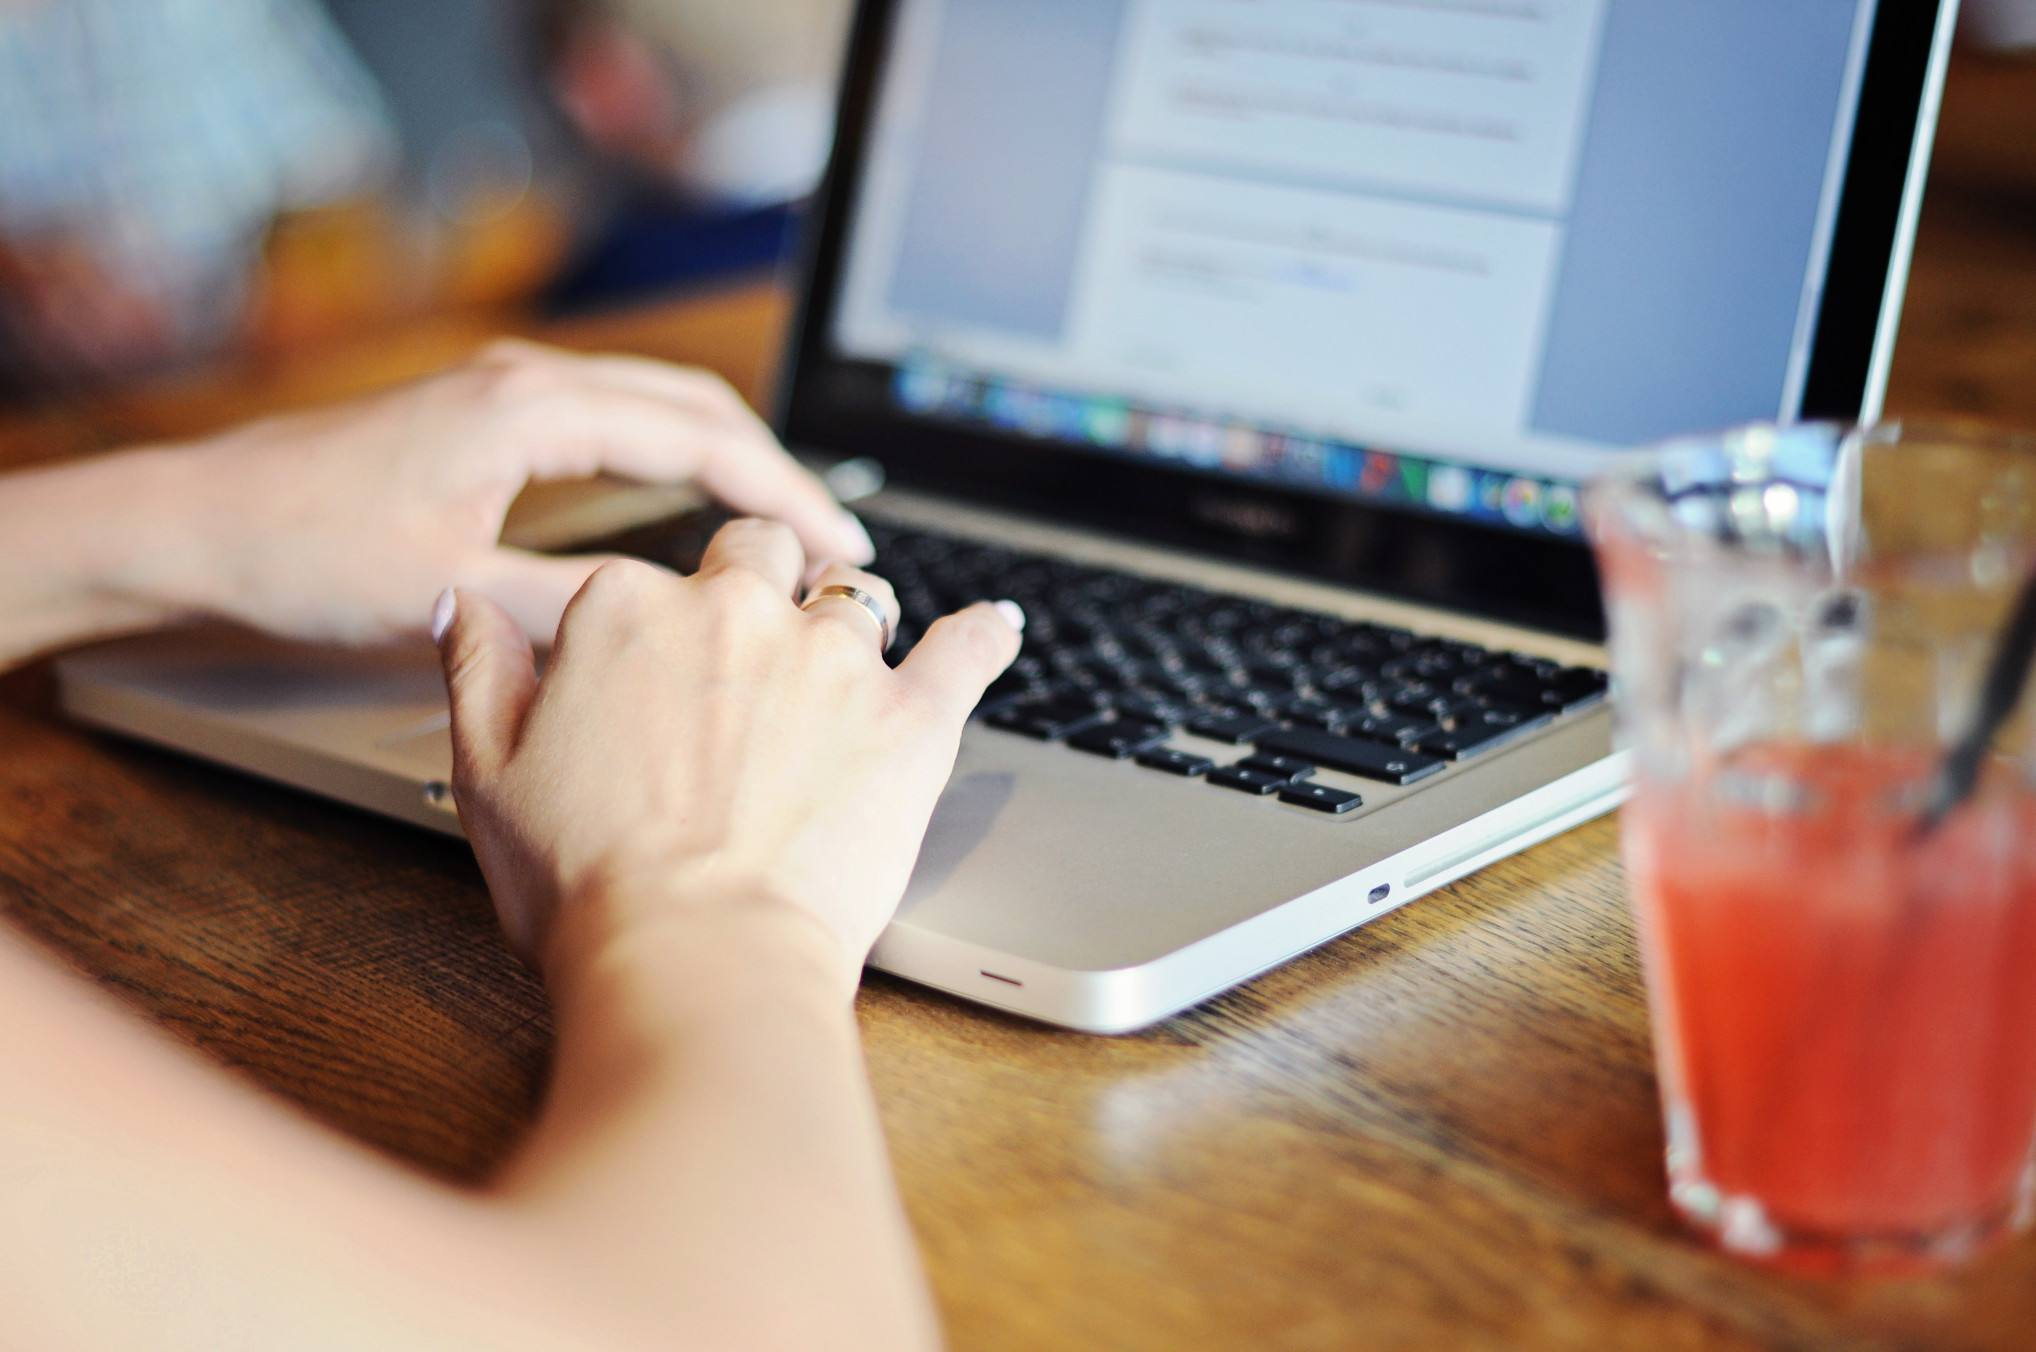 A woman's hands on a laptop with a drink sitting on the table next to it.